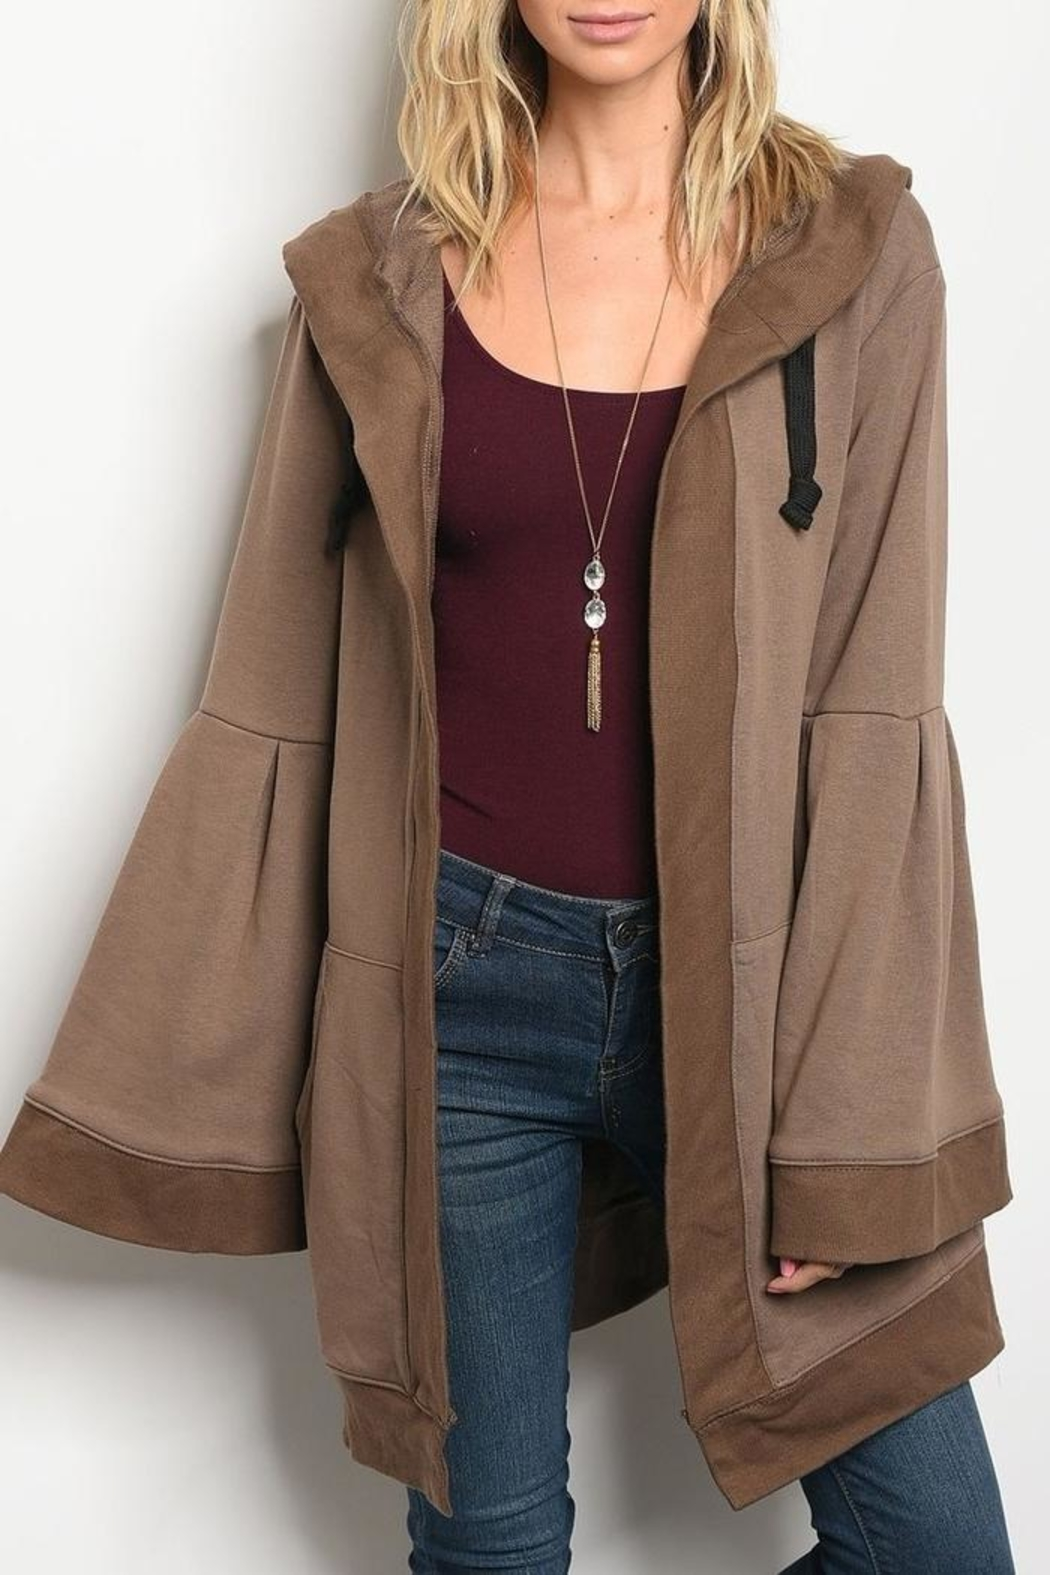 LoveRiche Mocha Hooded Cardigan - Main Image